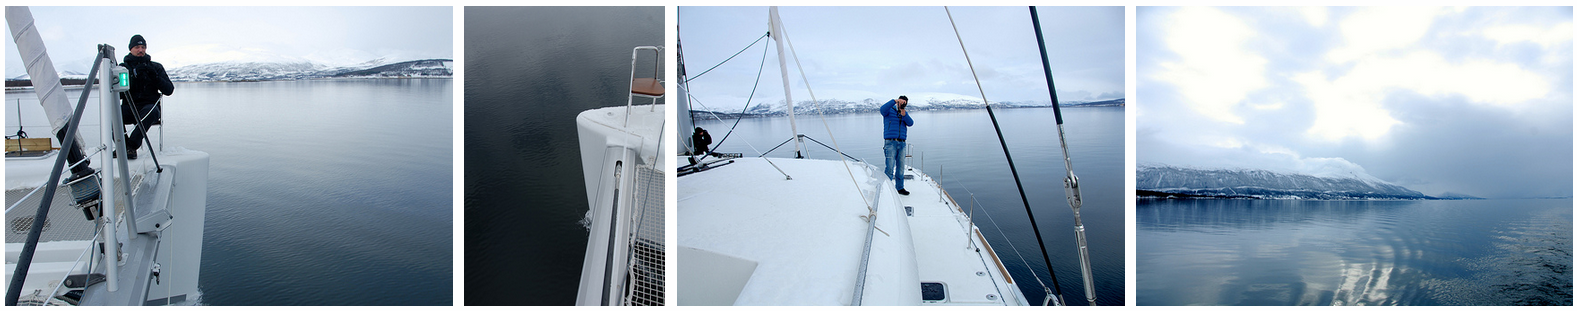 FjordCruise | Tromso | Easter | Lovely weather